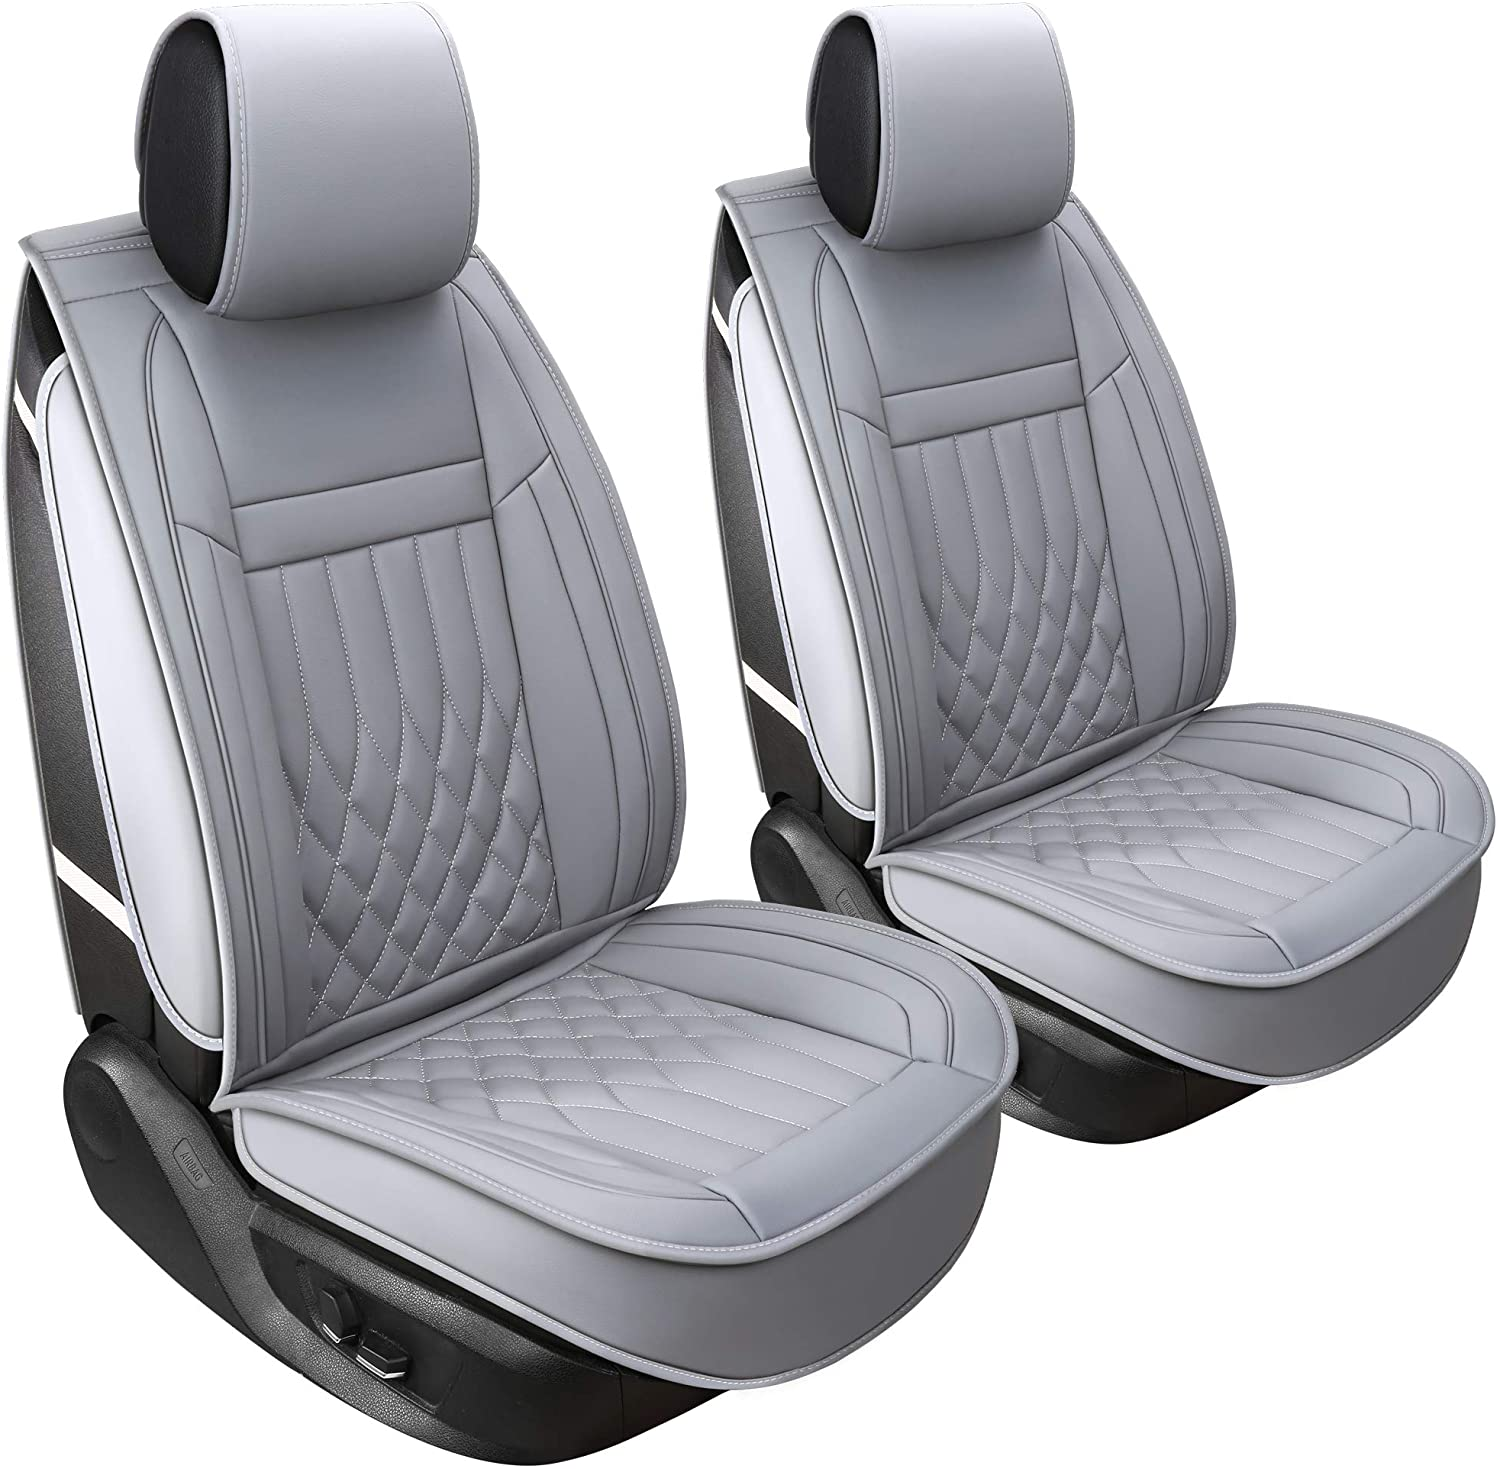 Aierxuan 2pcs Car Seat Covers Front Set with Waterproof Leather,Airbag Compatible Automotive Vehicle Cushion Cover Universal fit for Most Cars (Grey)